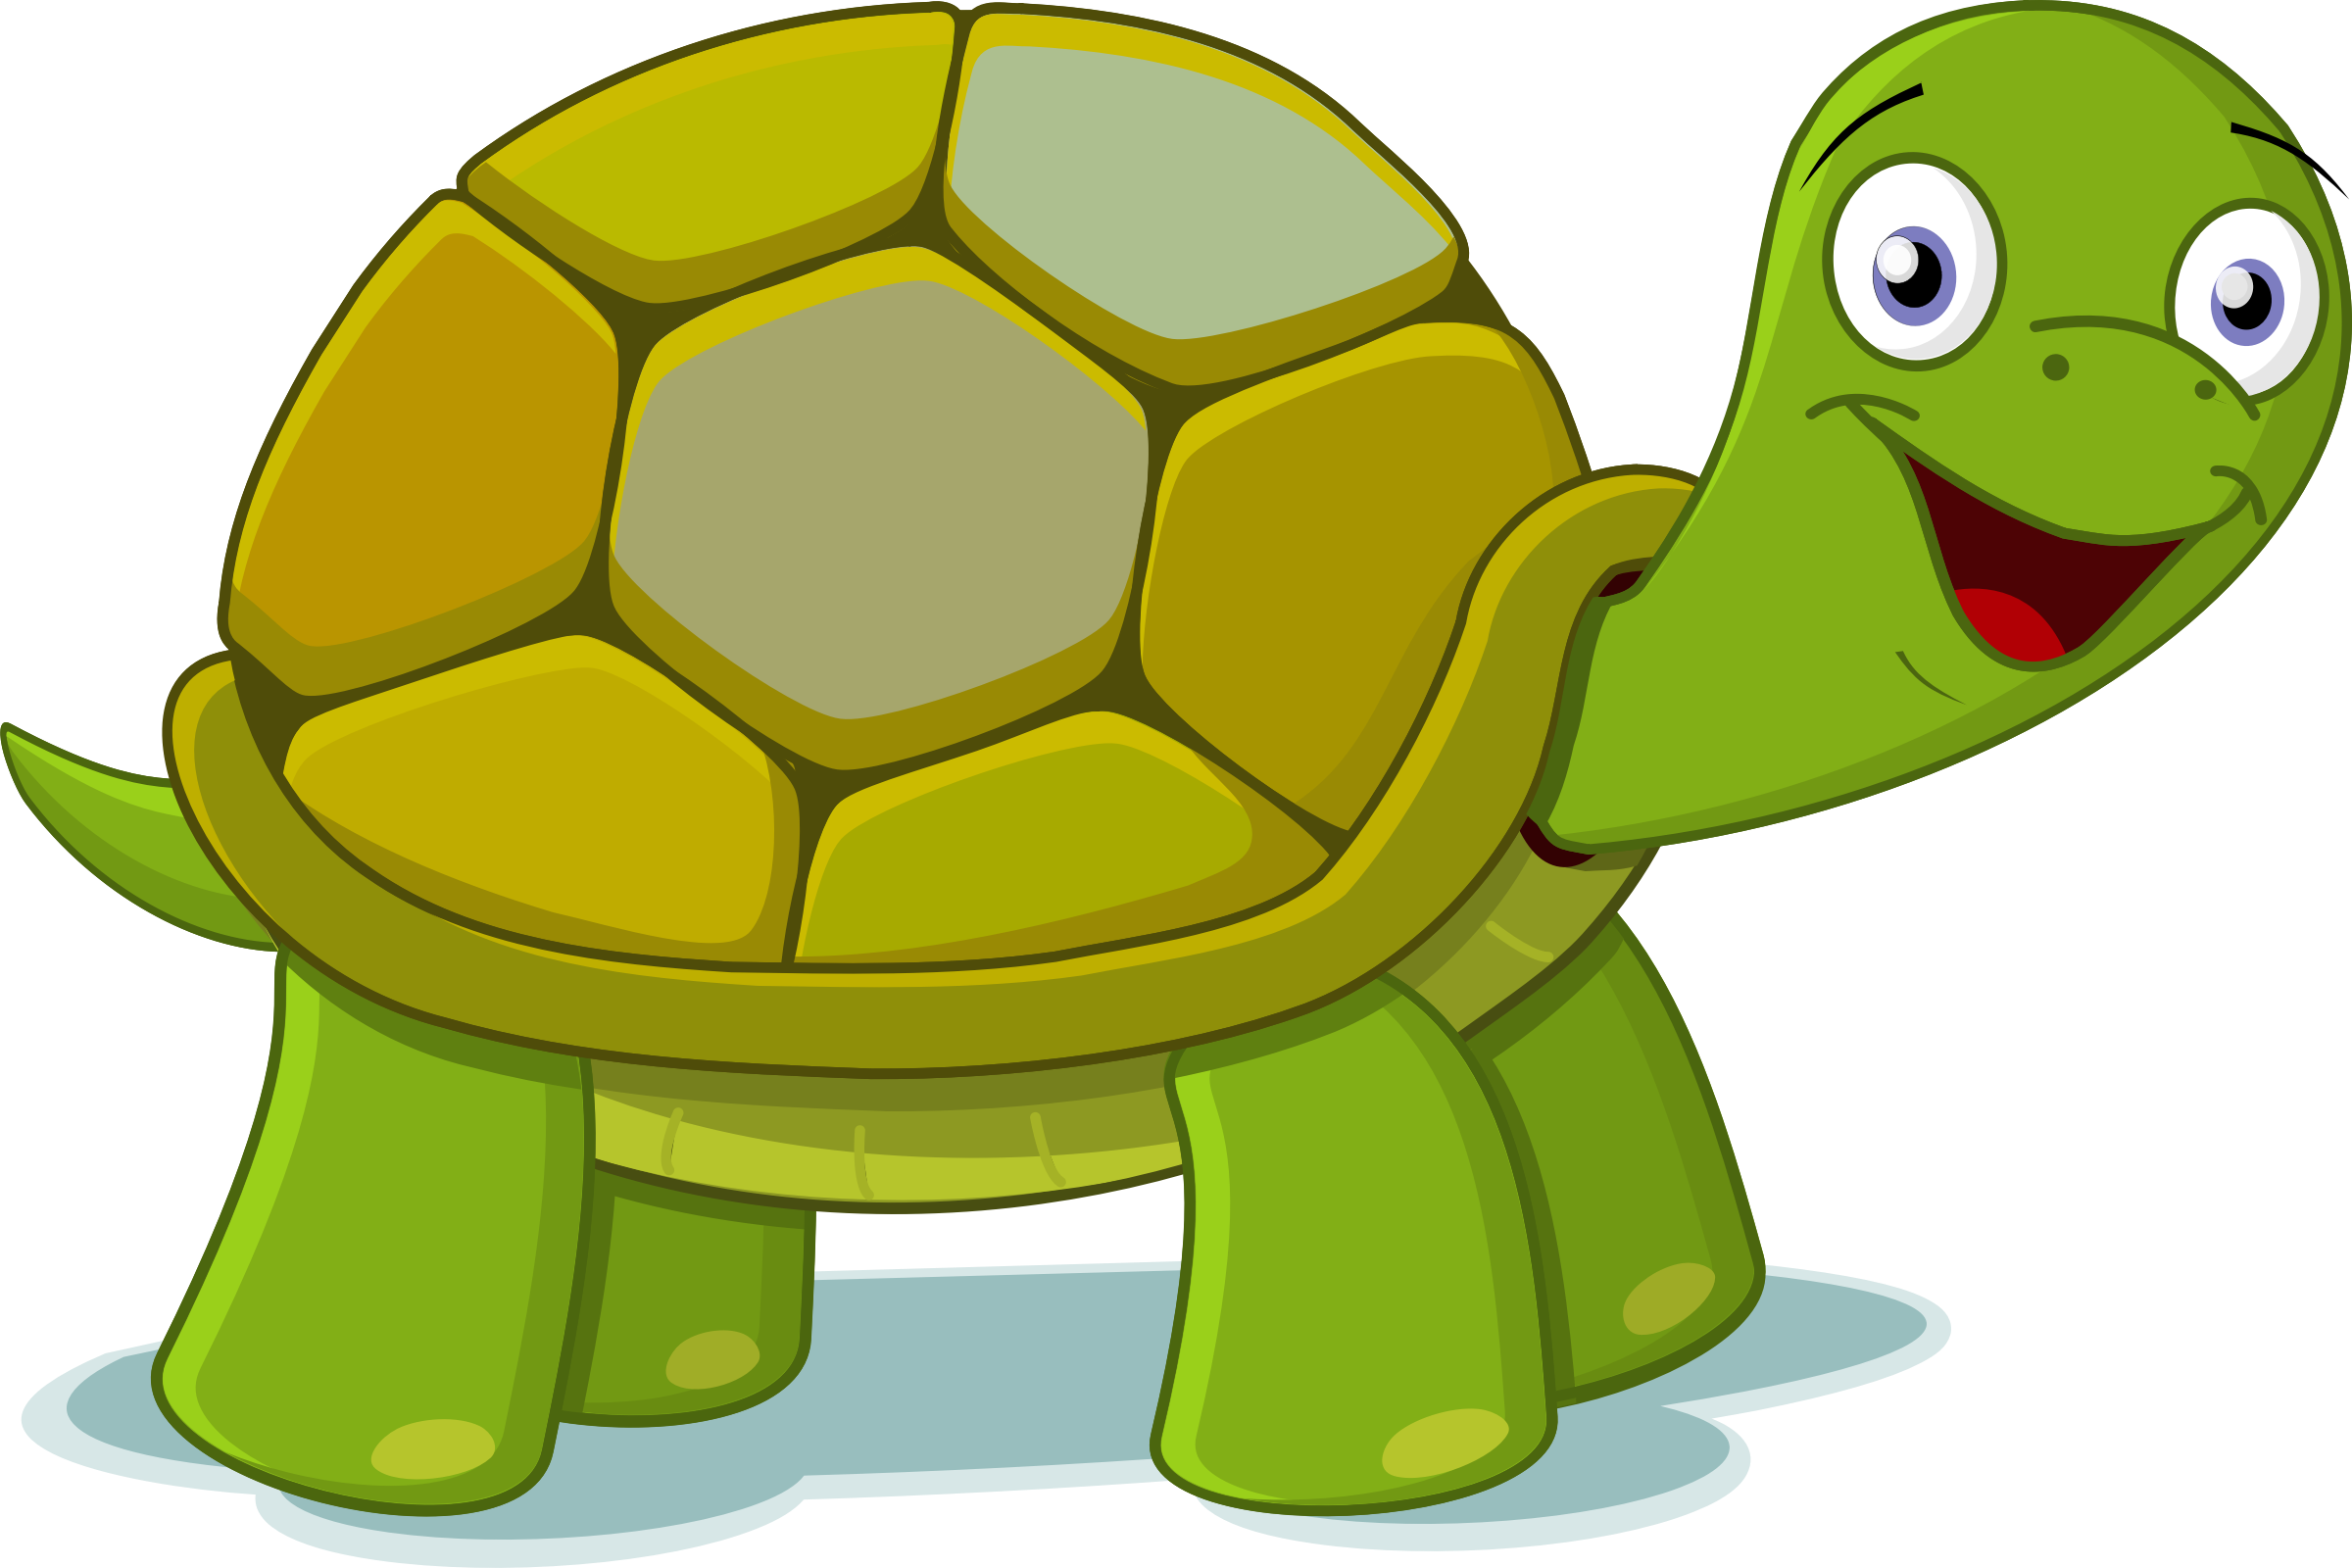 Cartoon Turtles Images | Free download on ClipArtMag